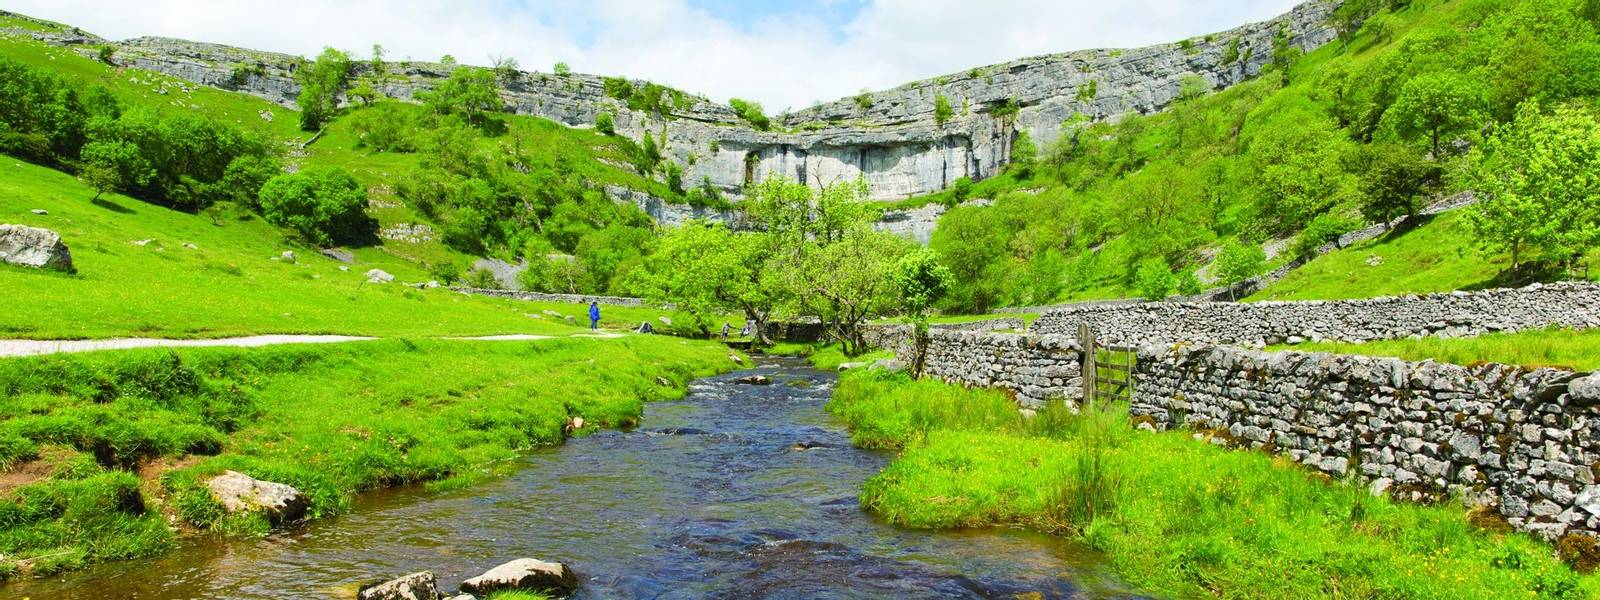 Malham Cove Yorkshire Dales National Park England UK popular visitor attraction